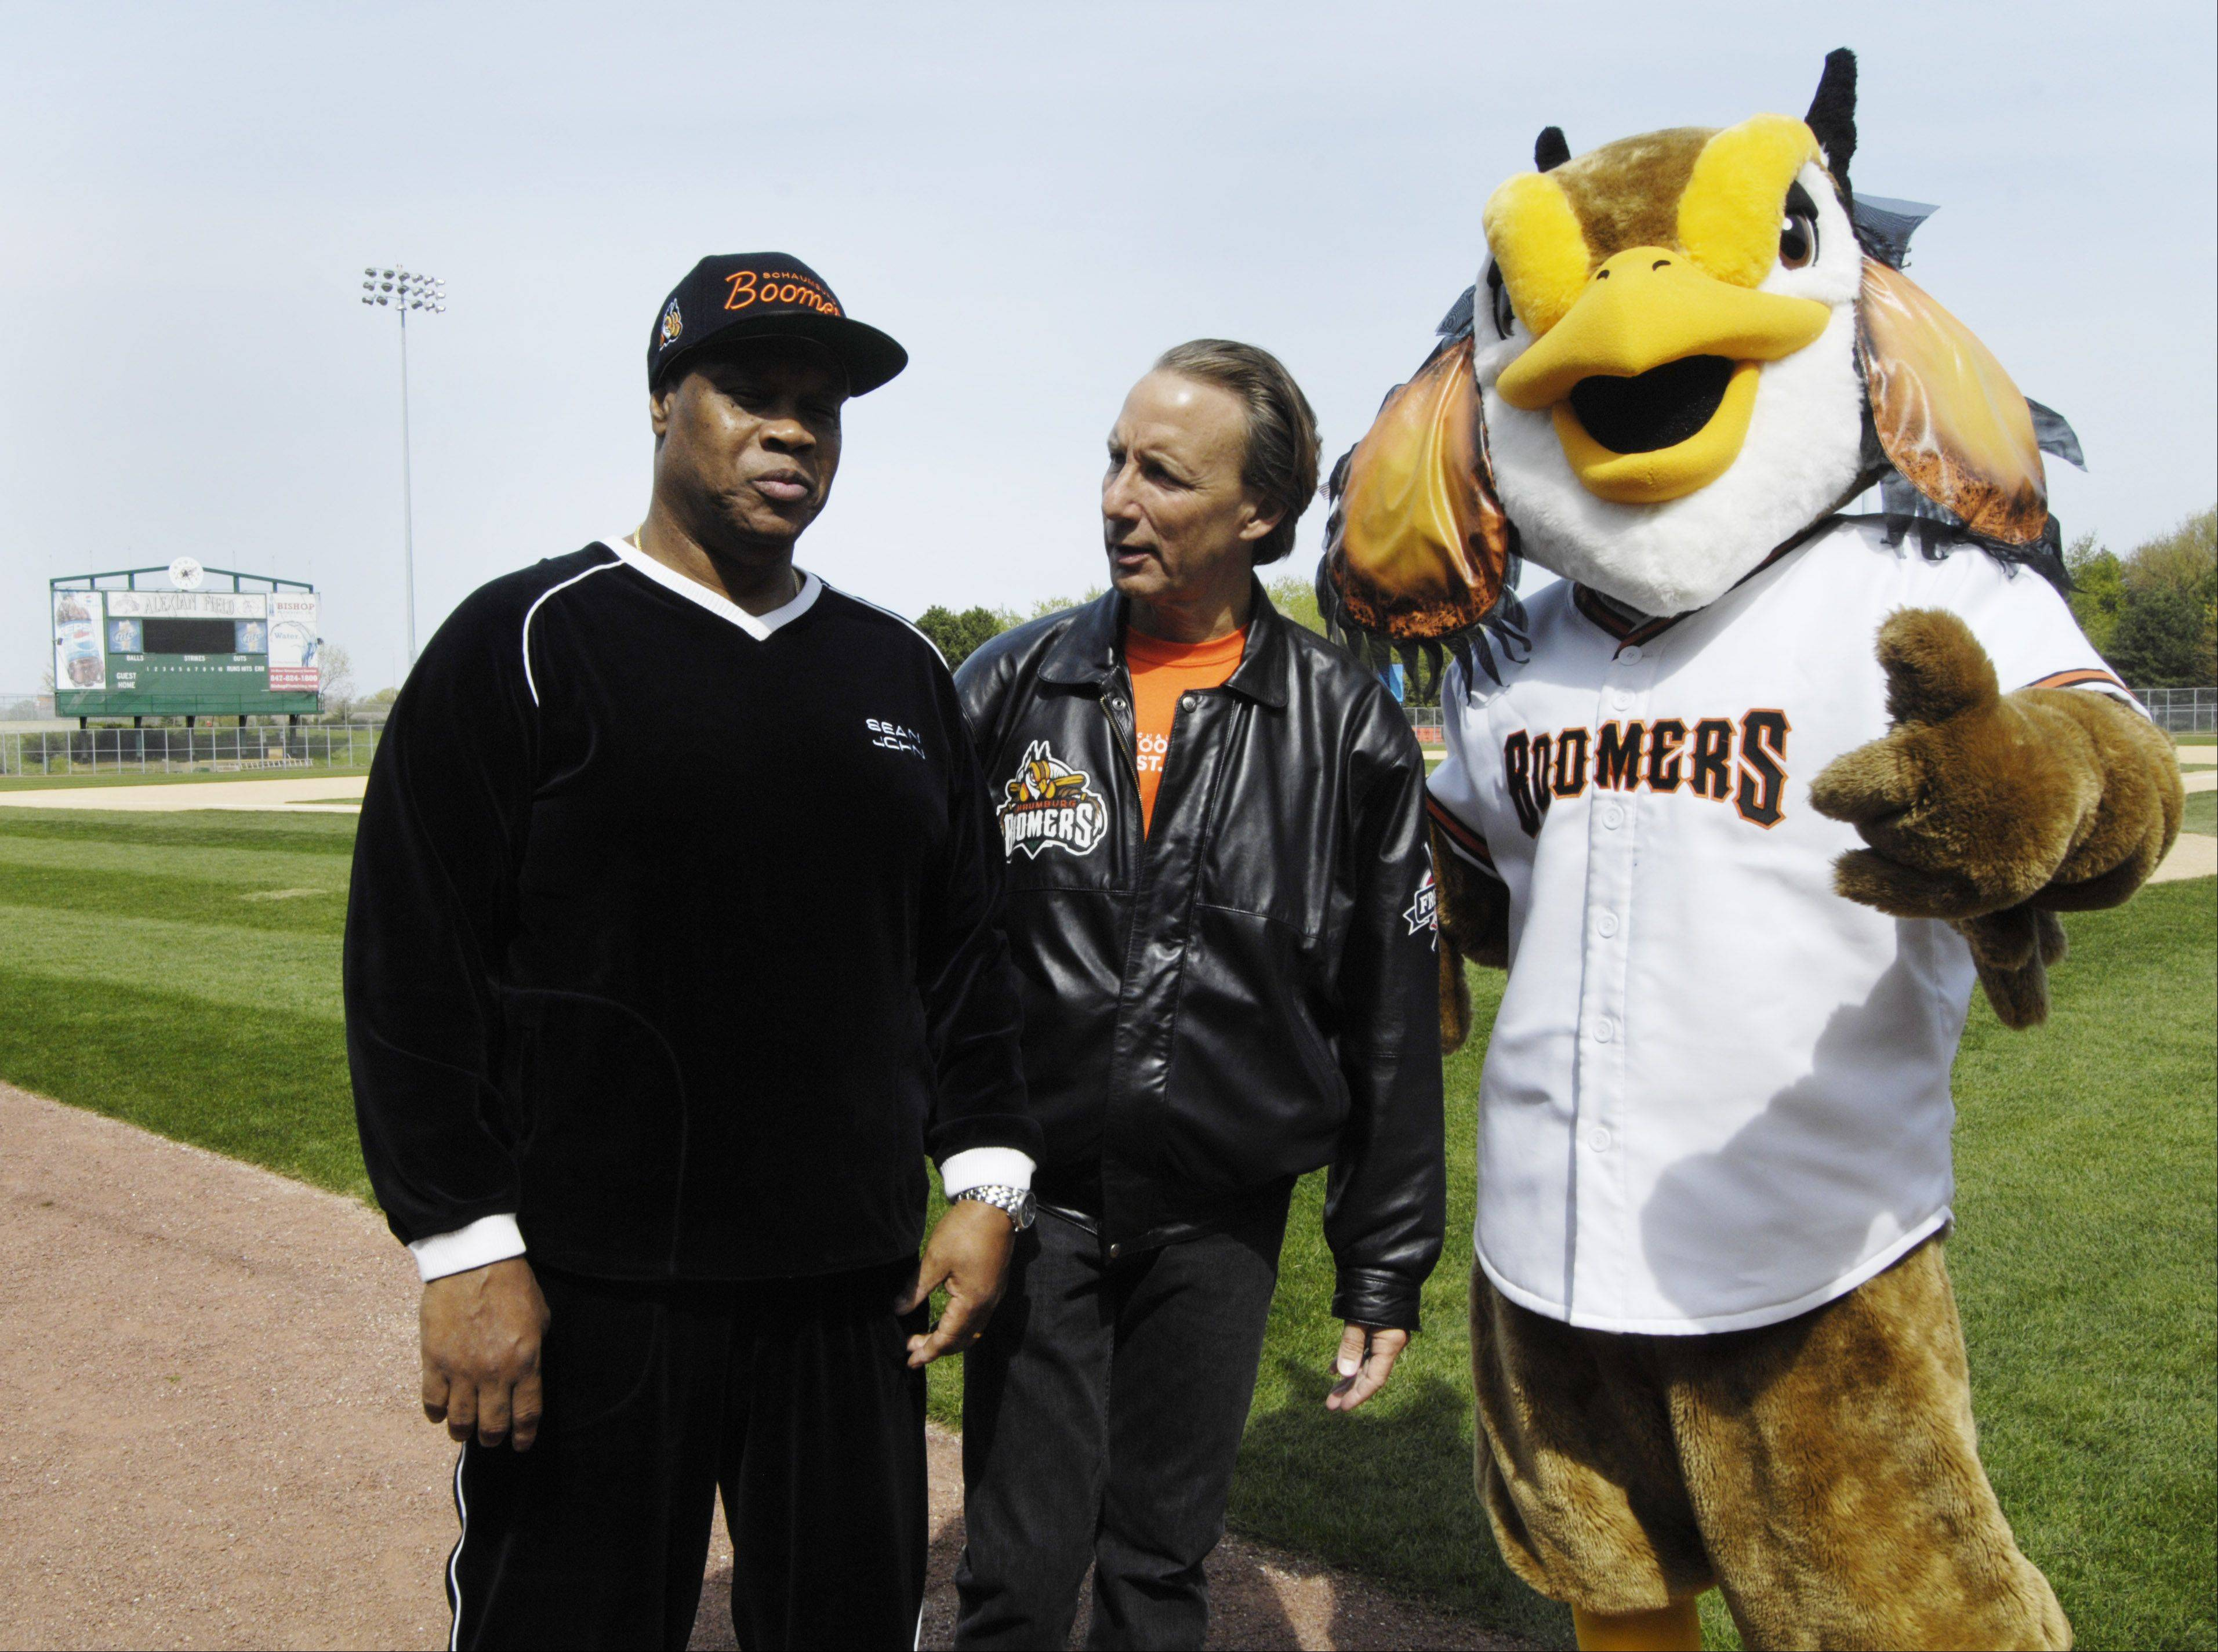 Former White Sox player Carlos May, left, stands with the team's owner Pat Salvi, and its mascot following his introduction as a coach during the Schaumburg Boomers baseball team open house Saturday.